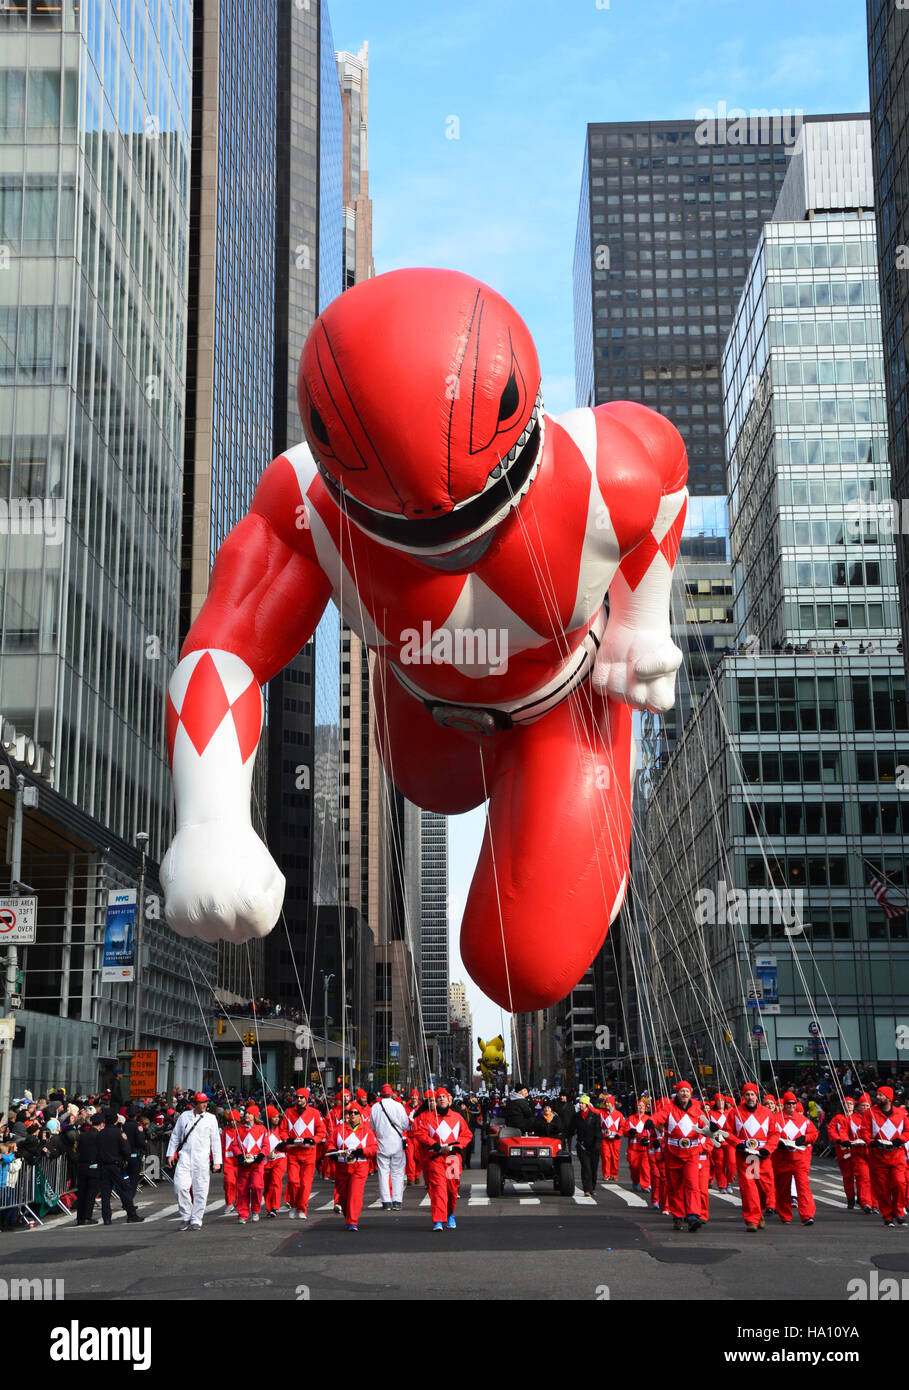 Red Mighty Morphin Power Ranger making his way down 6th Avenue. - Stock Image